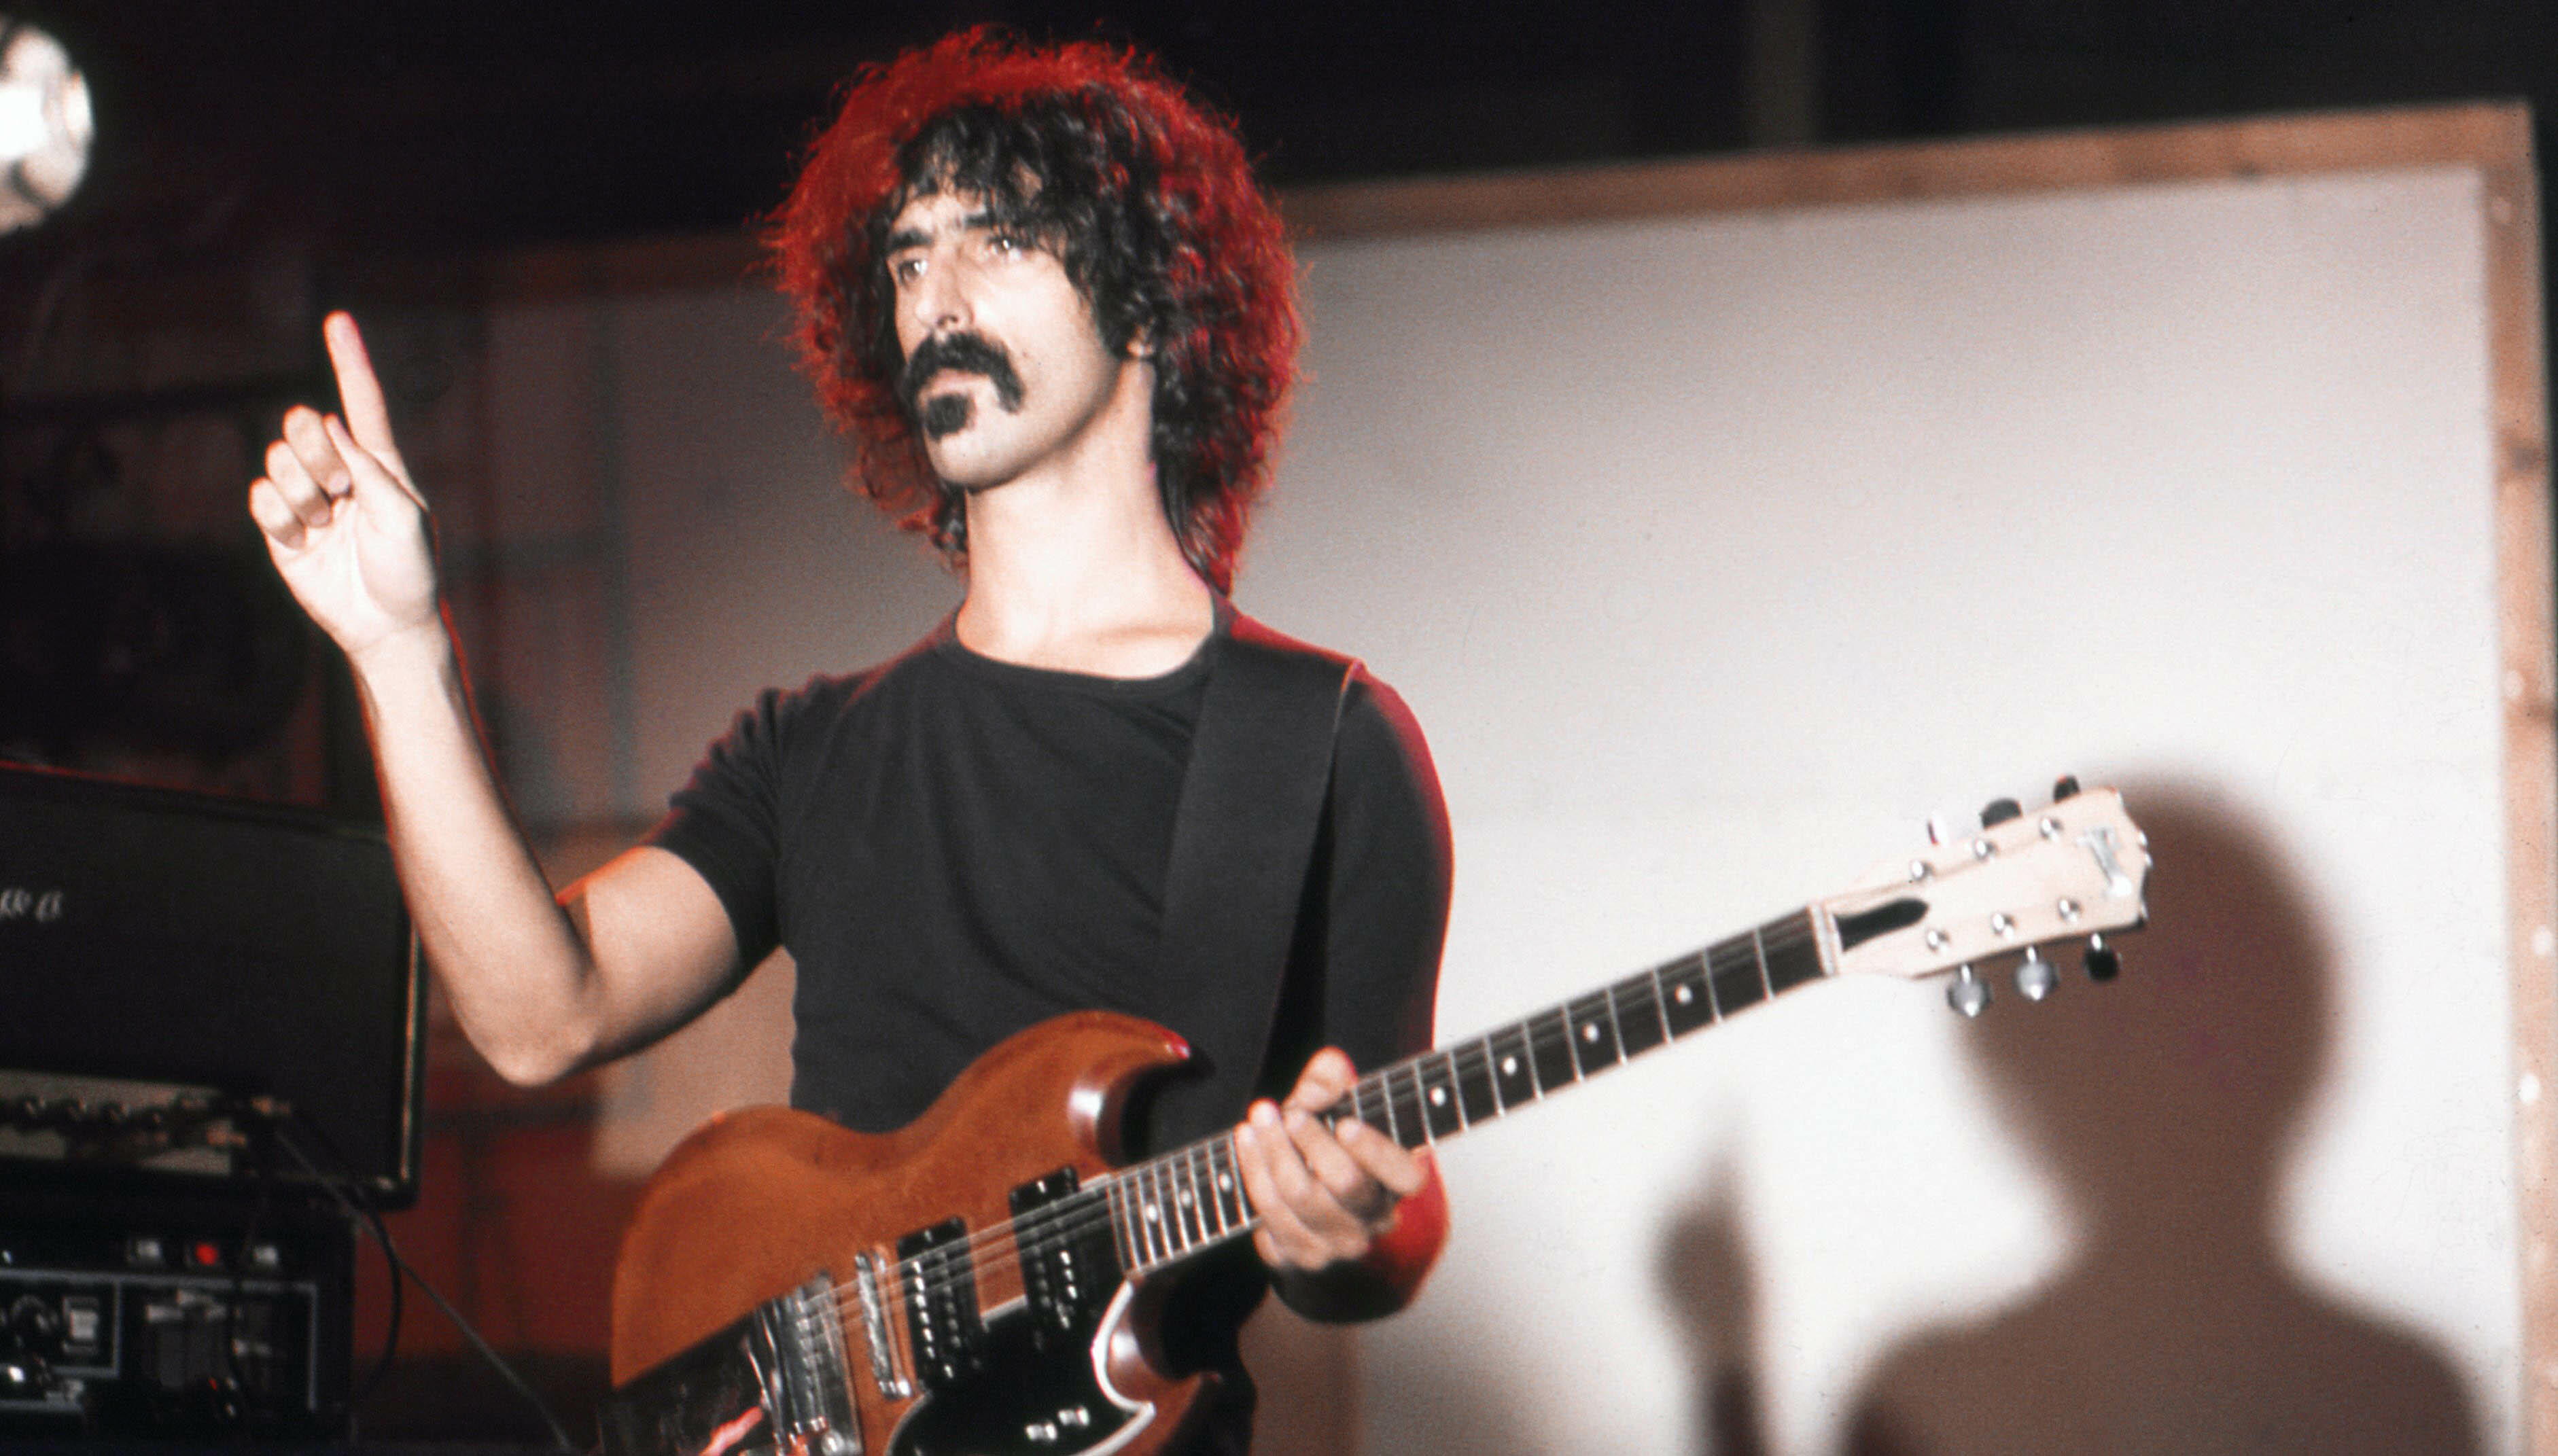 Frank Zappa Hologram to Perform New Music, Tour Announced